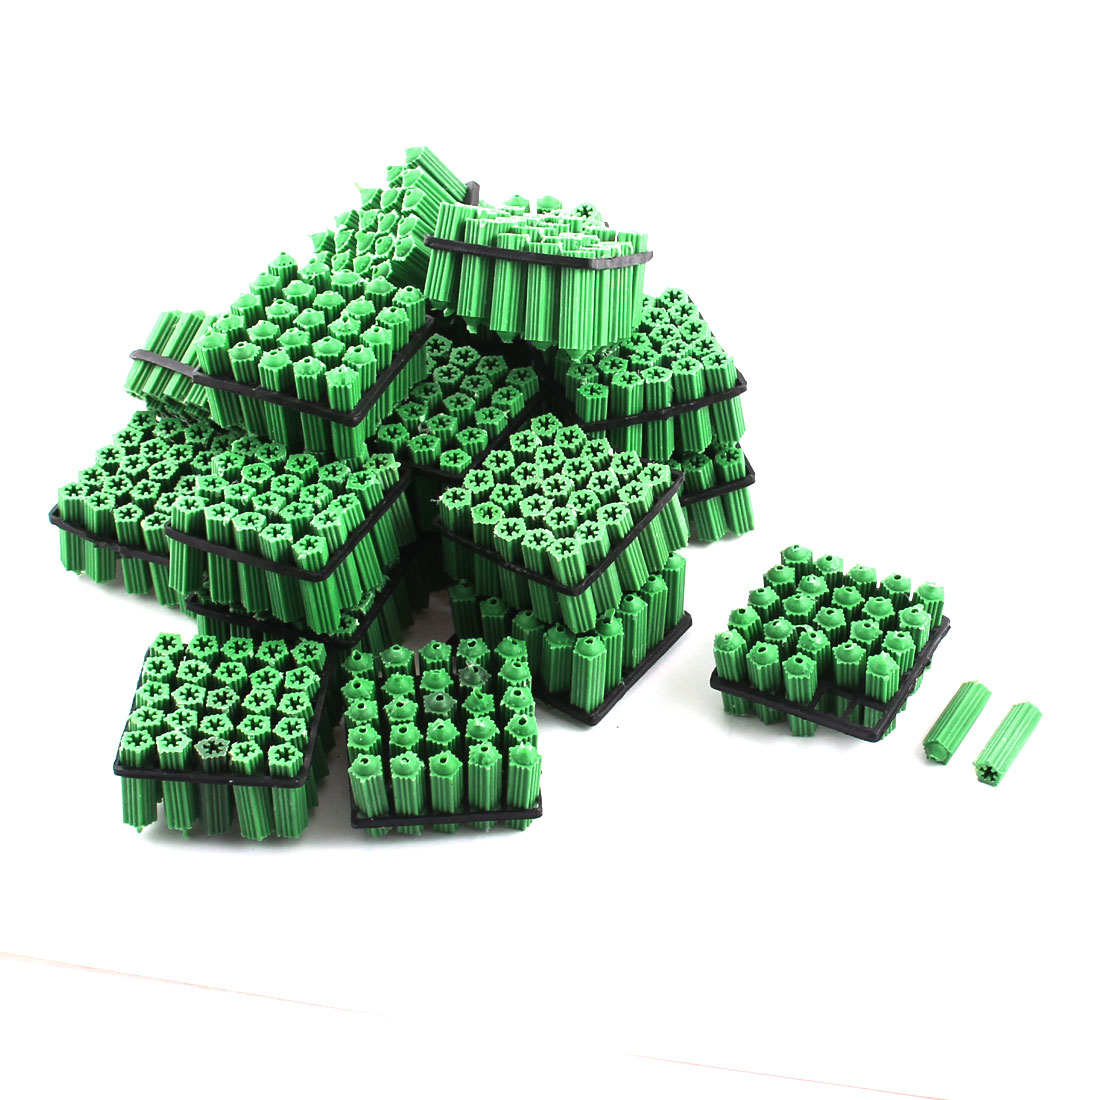 500 Pcs Green Plastic Masonry Screw Fixing Wall Anchor 8mm x 27mm